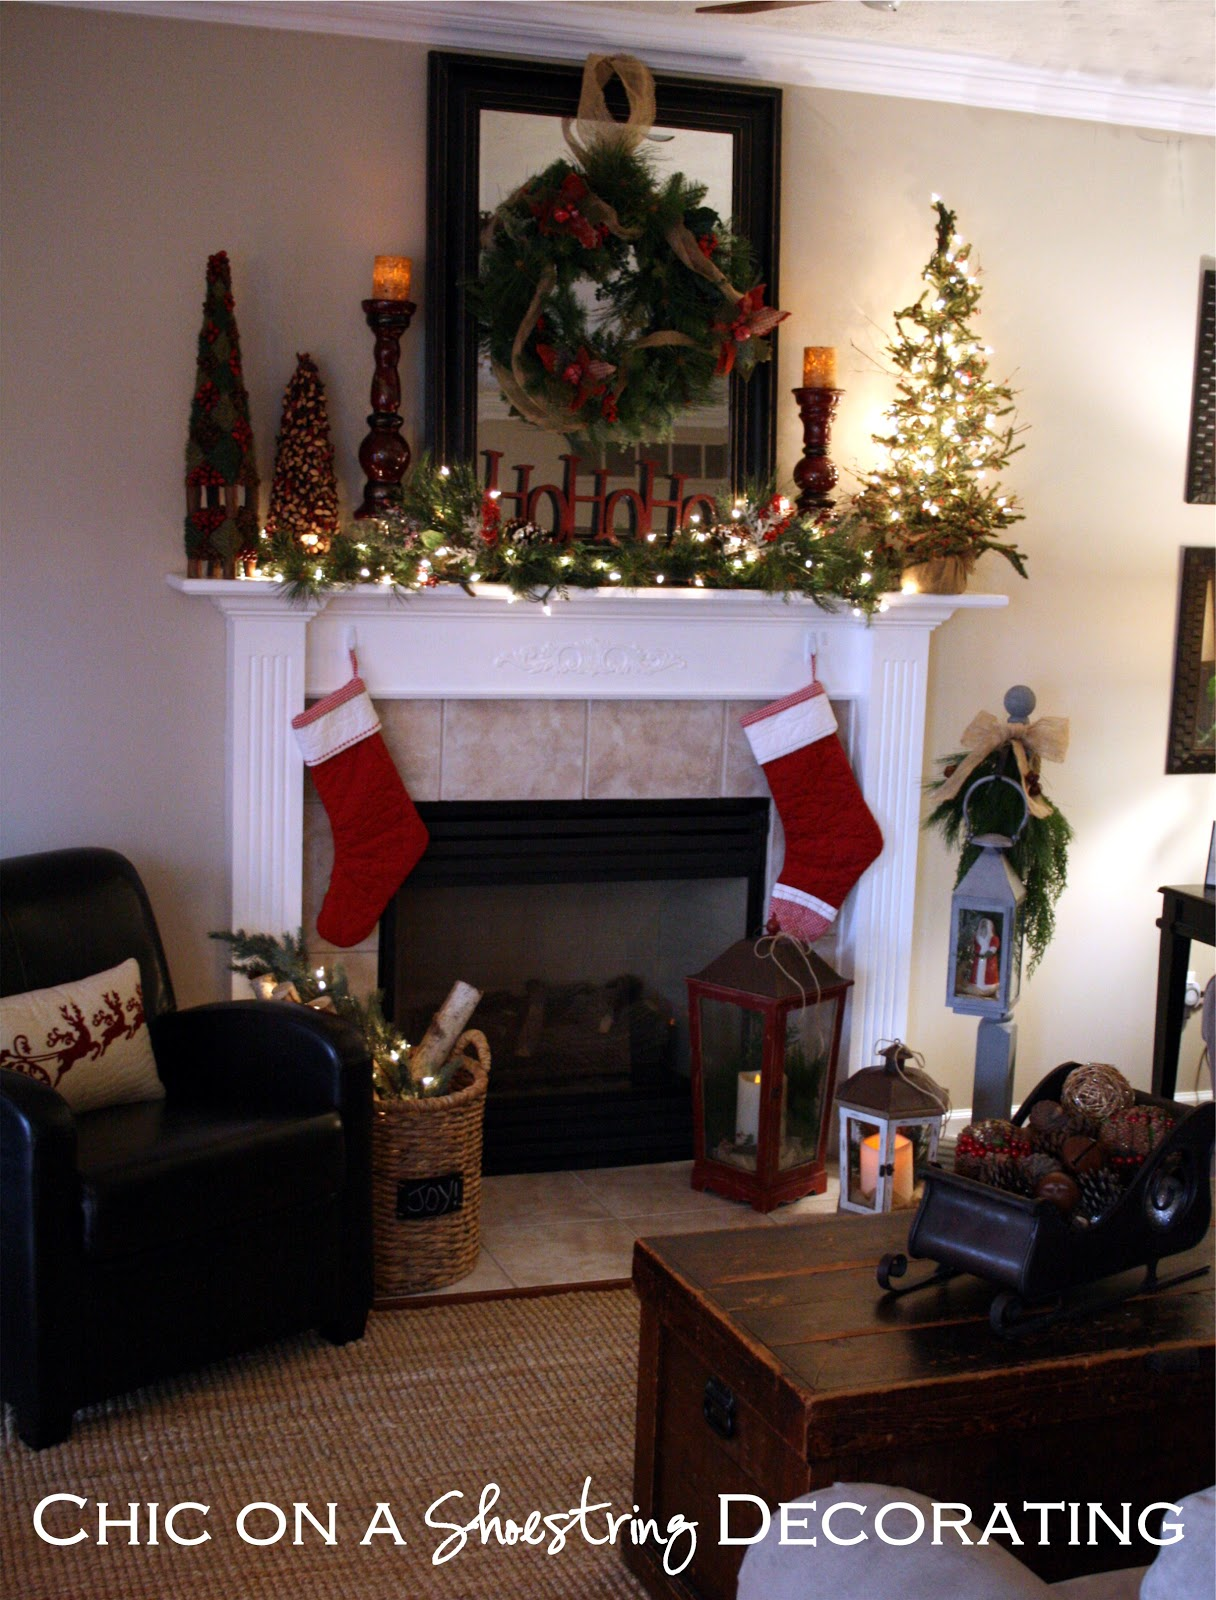 Chic on a shoestring decorating rustic christmas mantel for How to decorate a fireplace for christmas